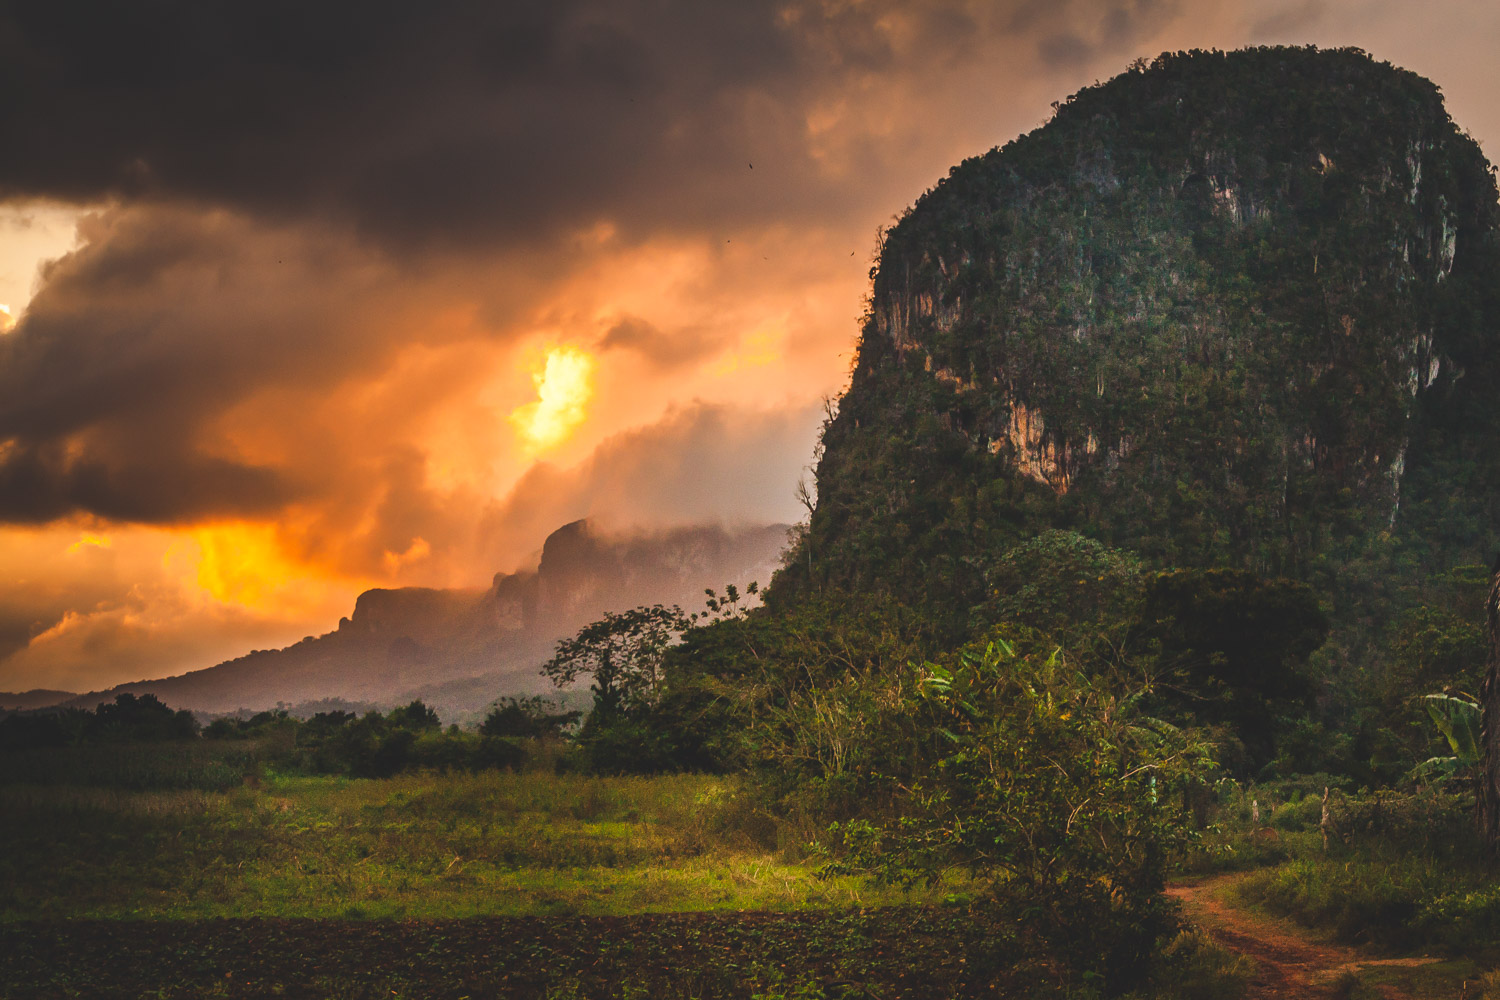 vinales-91-Edit.jpg